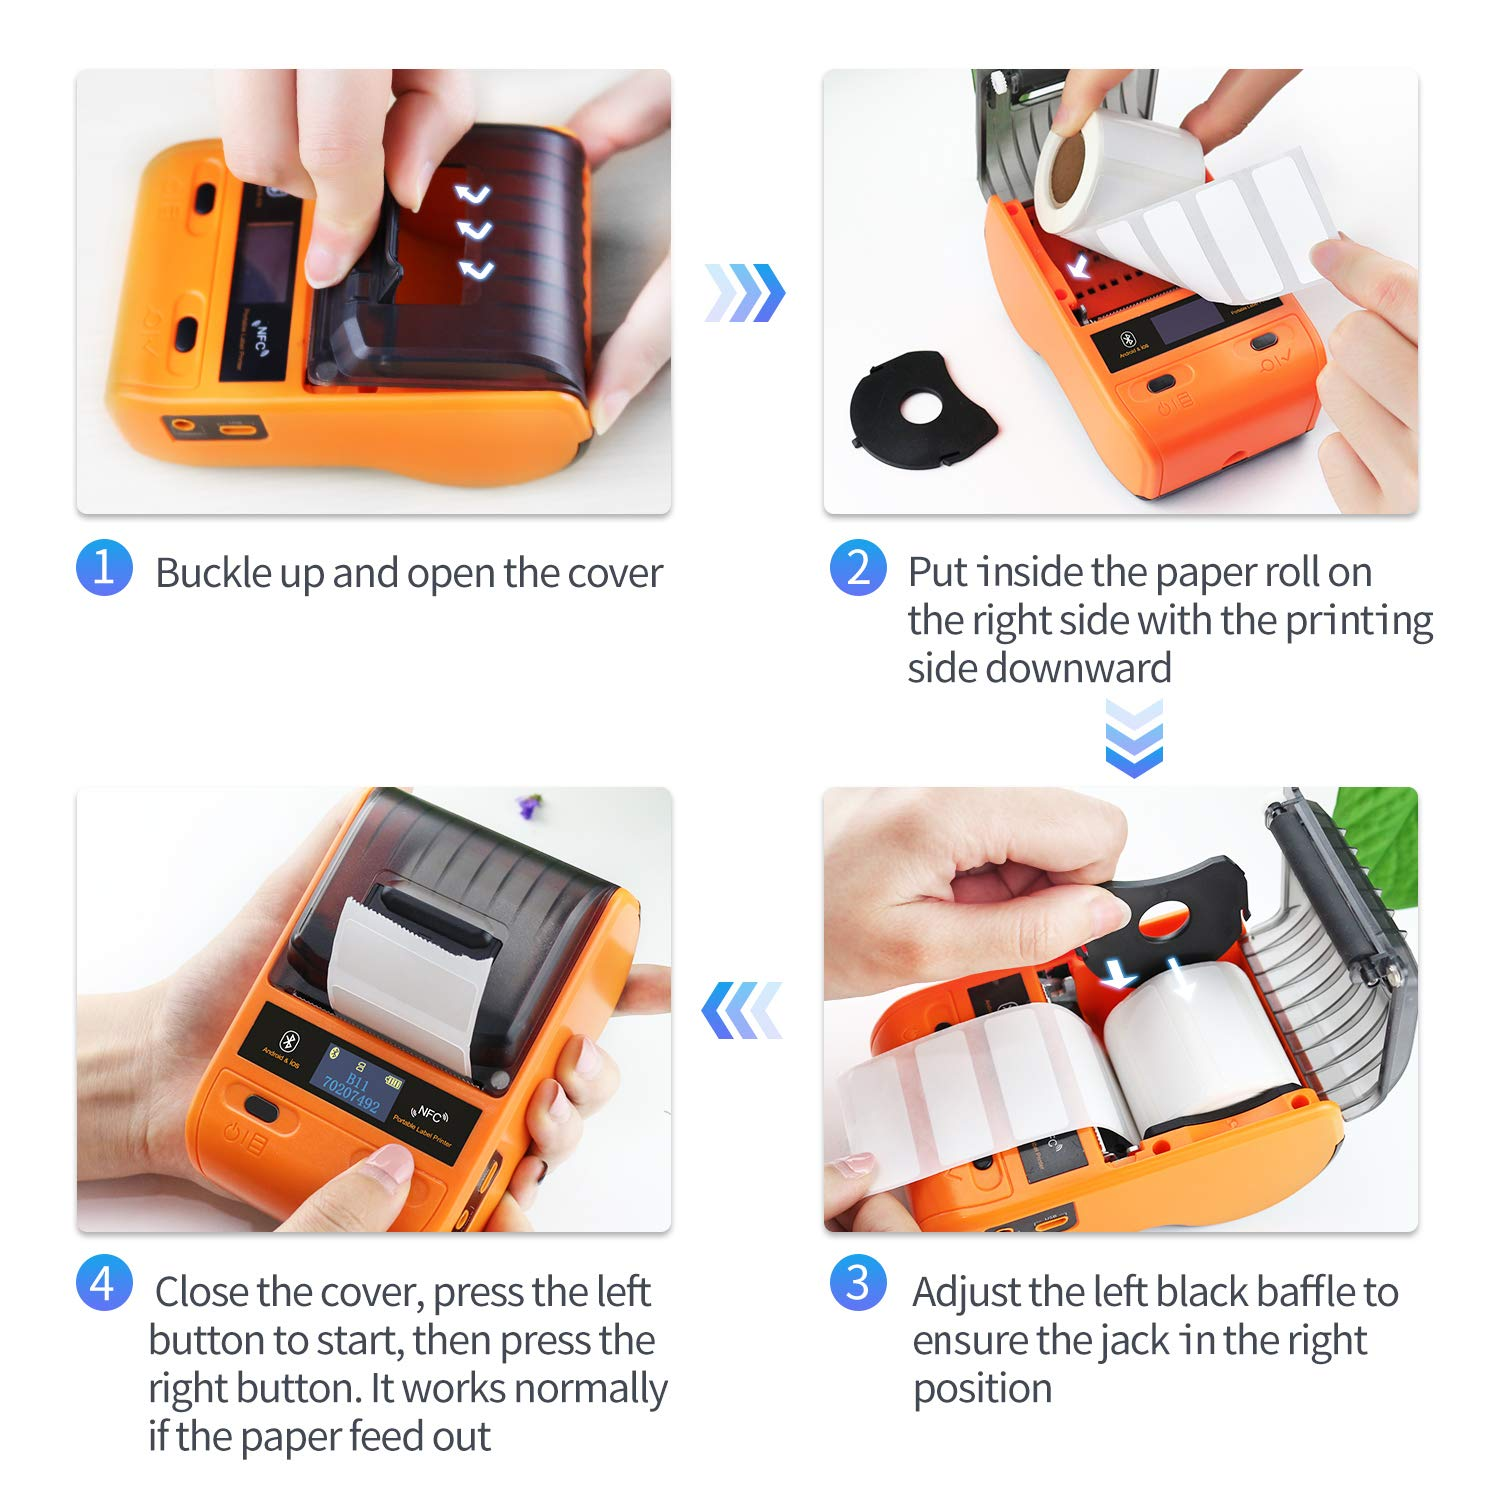 JINGCHEN B11 Bluetooth Portable Thermal Label Printer, Orange, Android & iOS, Wireless, Power & Communication, Computer-Room, Figures/Text/Images/barcodes, 1 roll for free (0.98x 1.50x1.57 in) 100 pcs by JINGCHEN (Image #7)